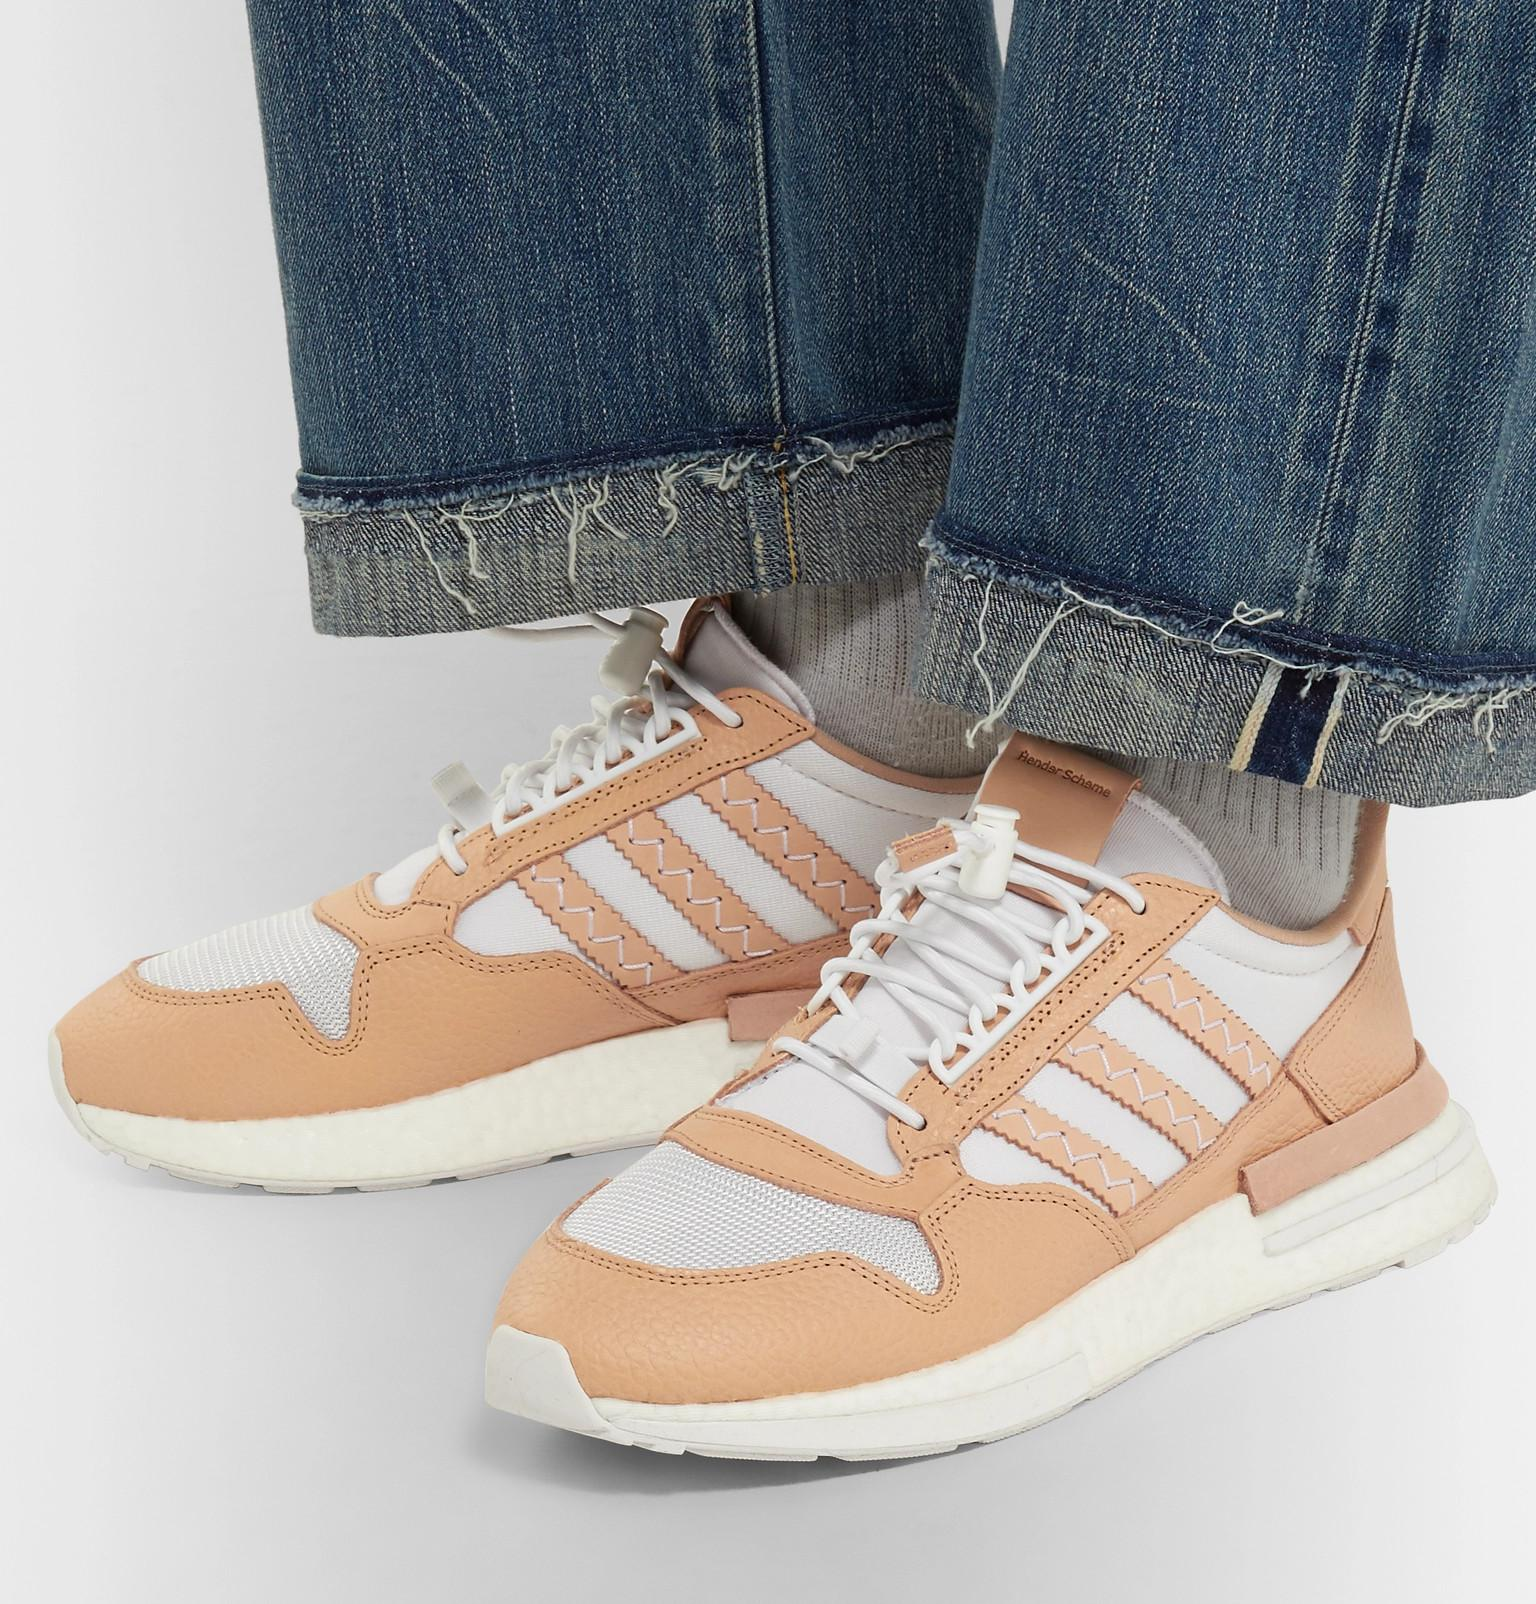 in stock b68cf 24266 adidas Originals Hender Scheme Zx 500 Rm Mt Leather And Mesh ...